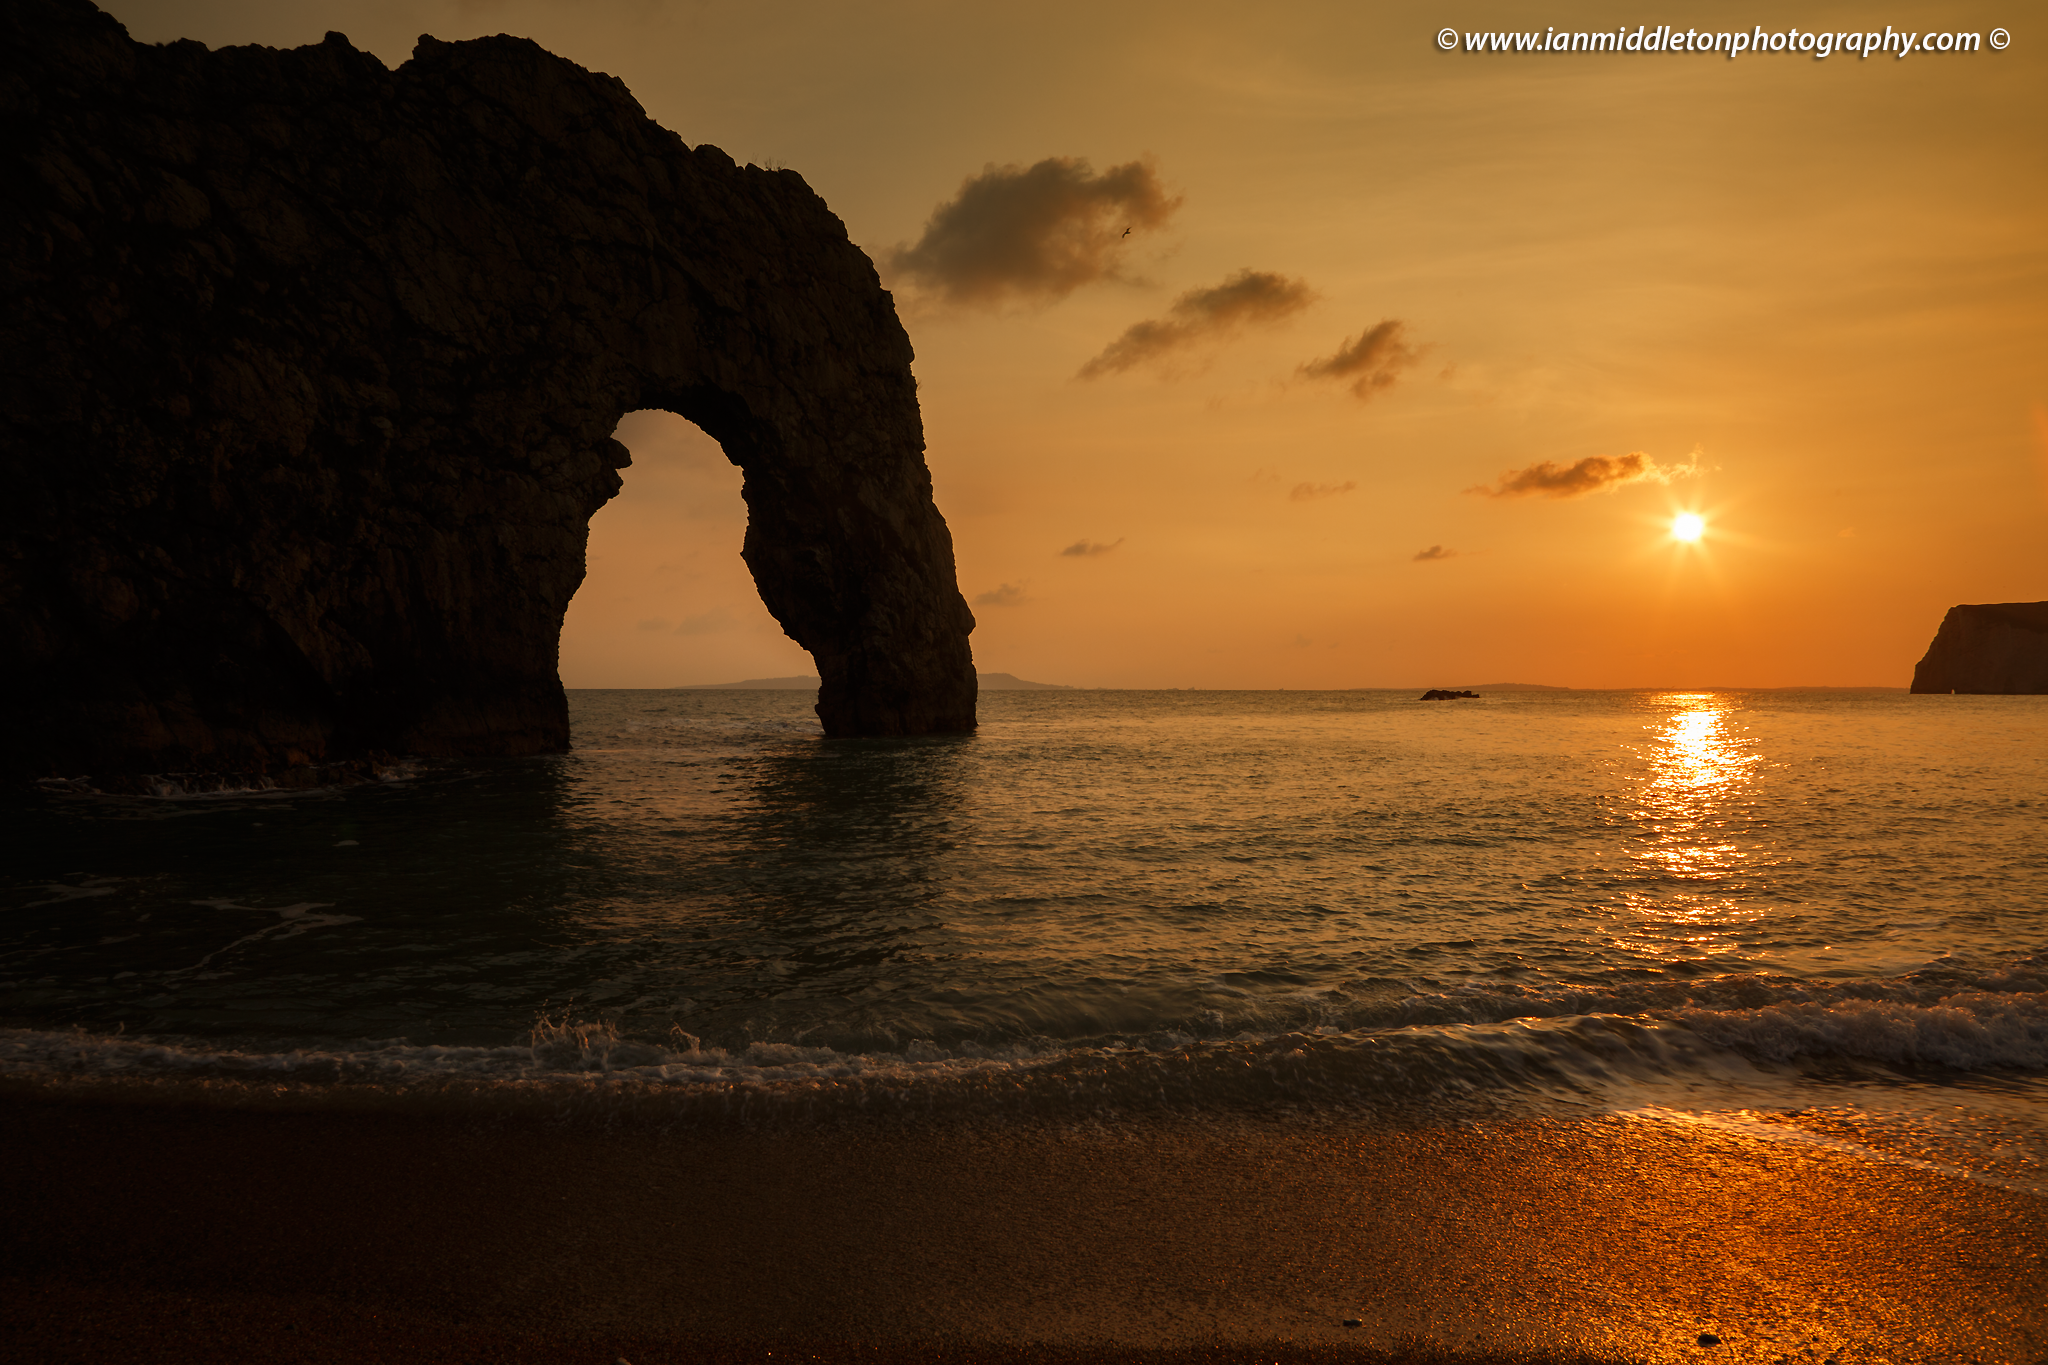 The late afternoon sun casts a warm glow over Durdle Door rock arch and beach at sunset, Dorset, England.